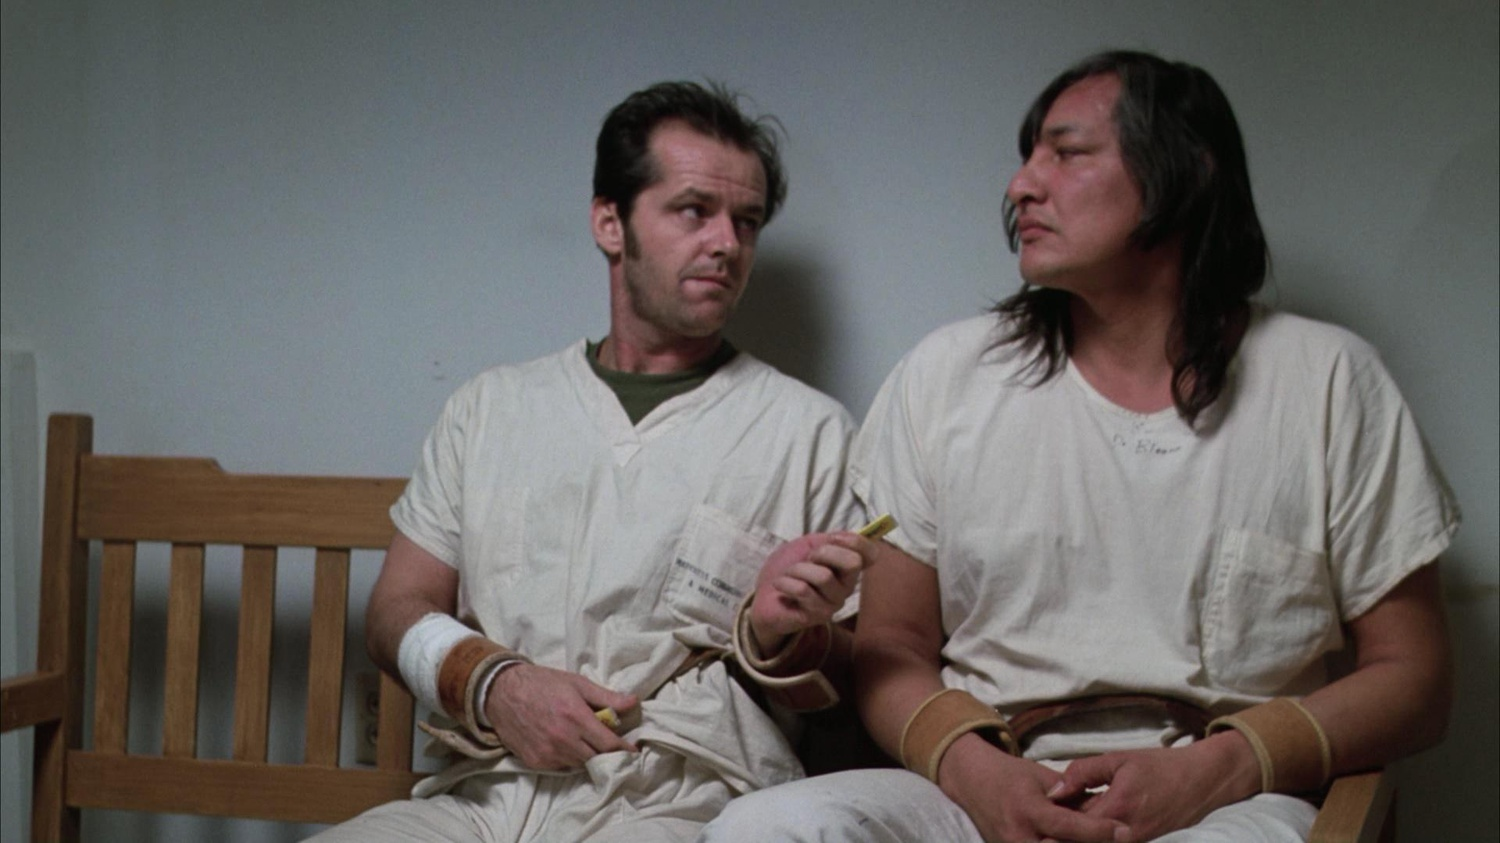 """Jack Nicholson (left) stars as Randle McMurphy and Will Sampson (right) stars as """"Chief"""" Bromden in """"One Flew Over the Cuckoo's Nest"""" (1975), directed by Miloš Forman."""